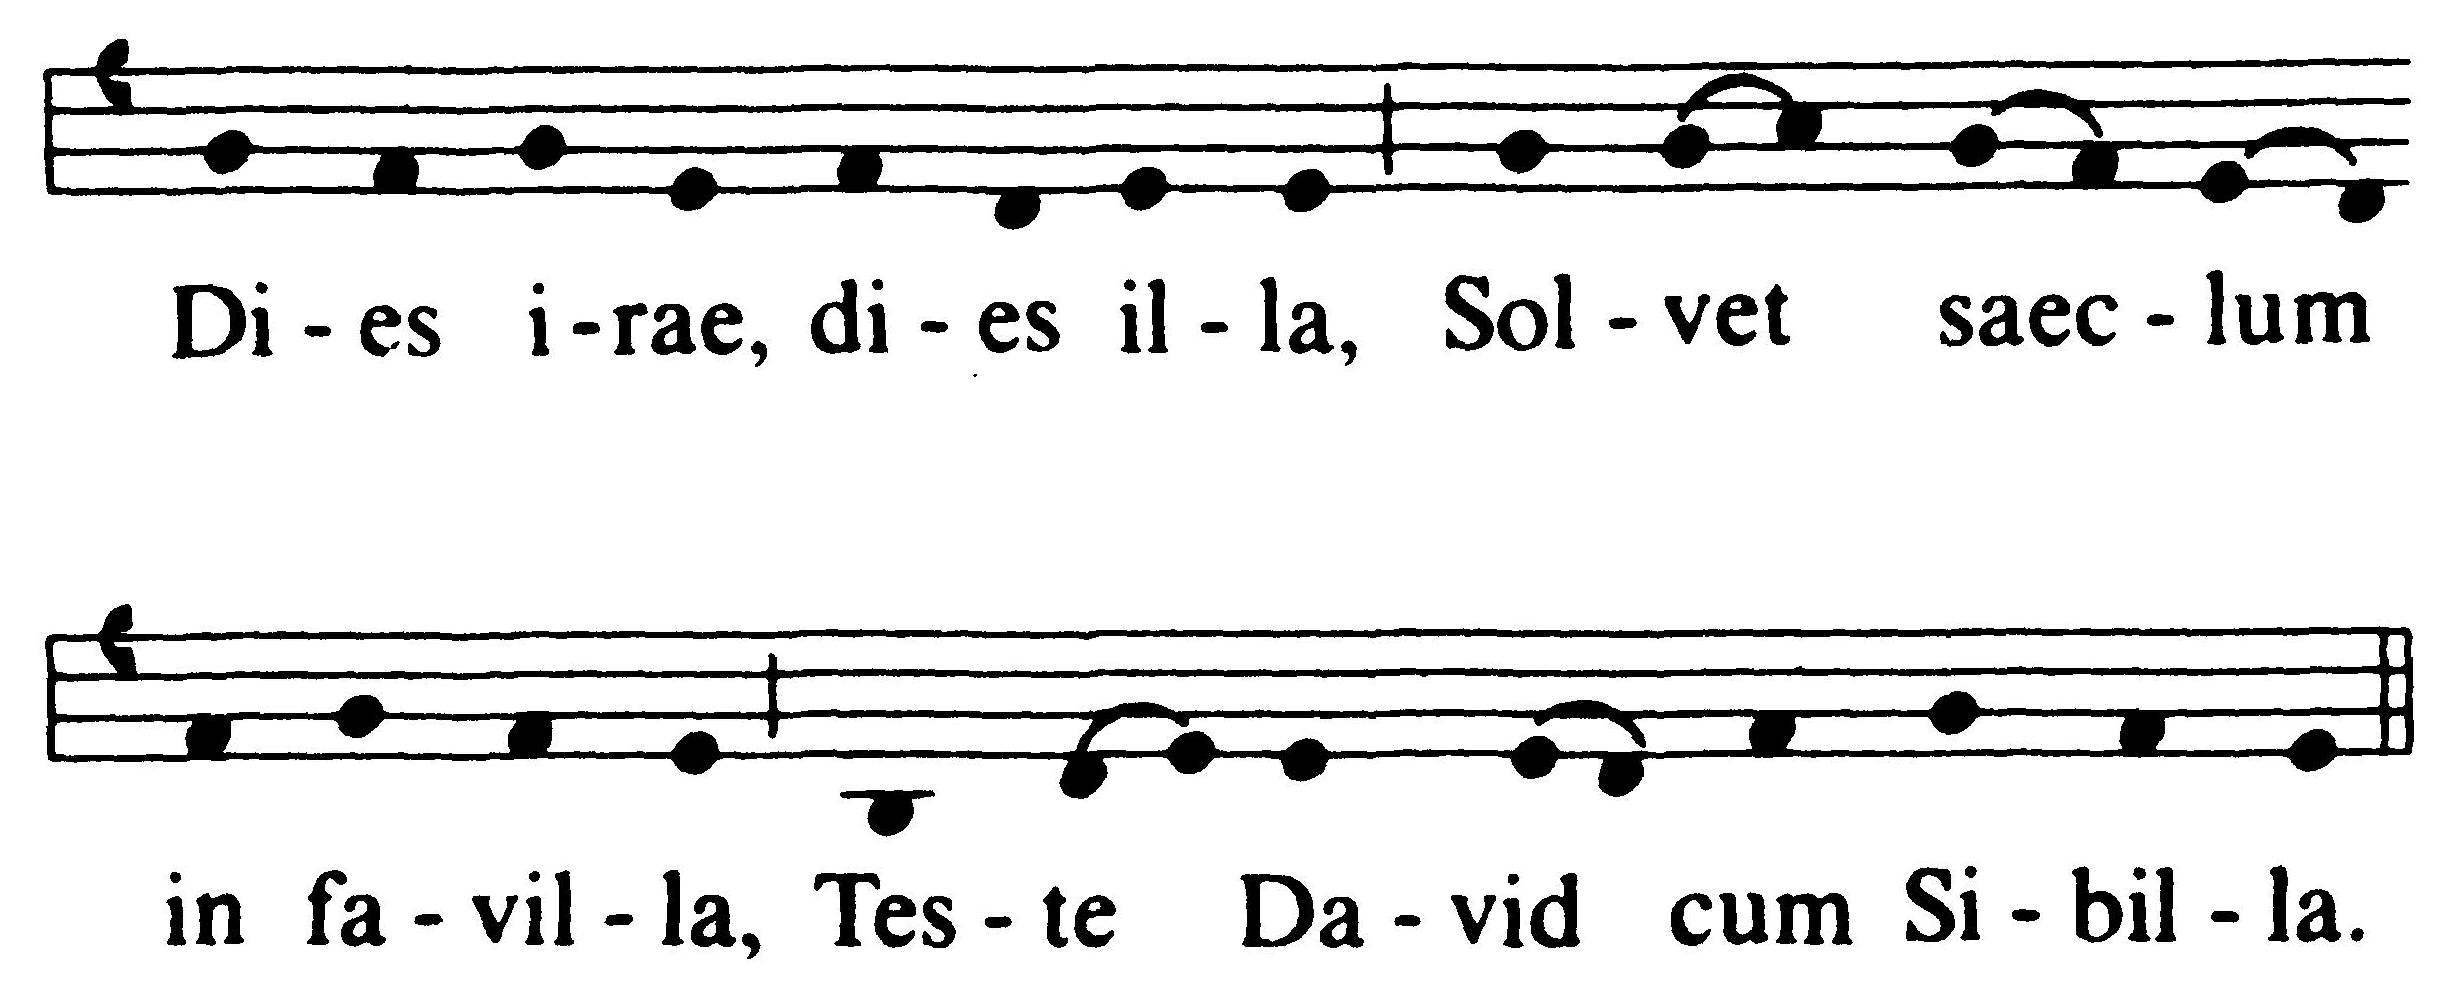 Diesiraemusicalnotationg taken from the beginning of the piece the entire hymn consists of this melody ref repeated over and over in modern musical notation the melody looks biocorpaavc Image collections